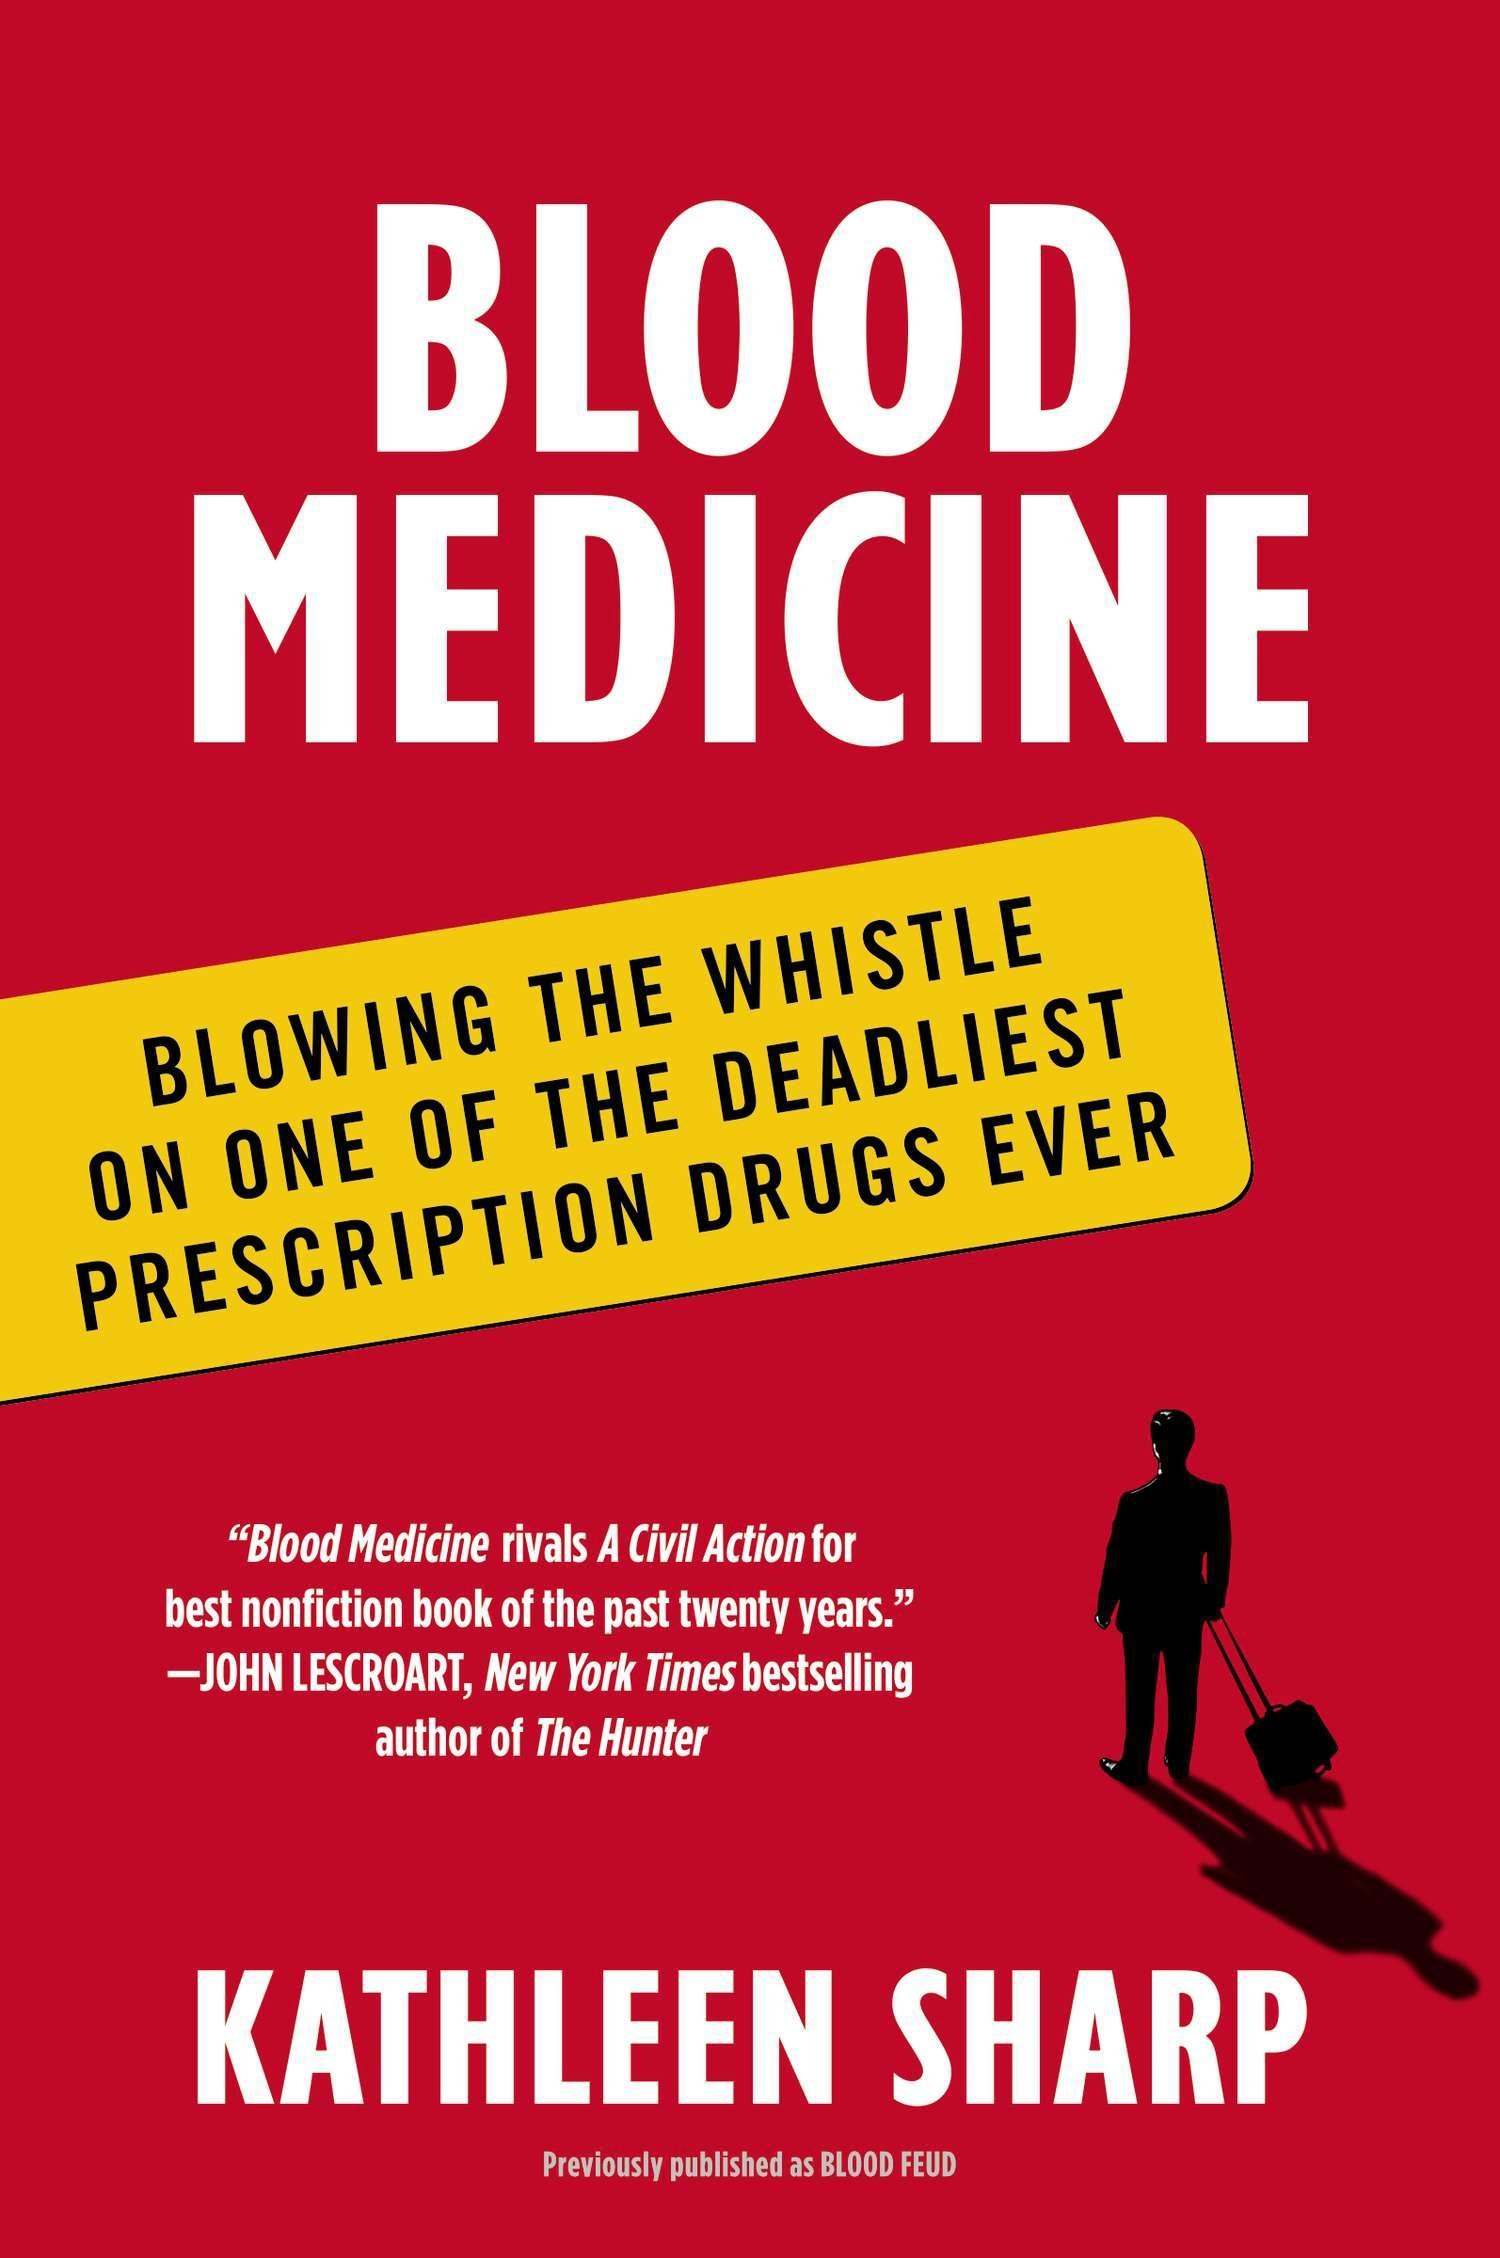 Blood Medicine: Blowing the Whistle on One of the Deadliest Prescription Drugs Ever PDF ePub ebook